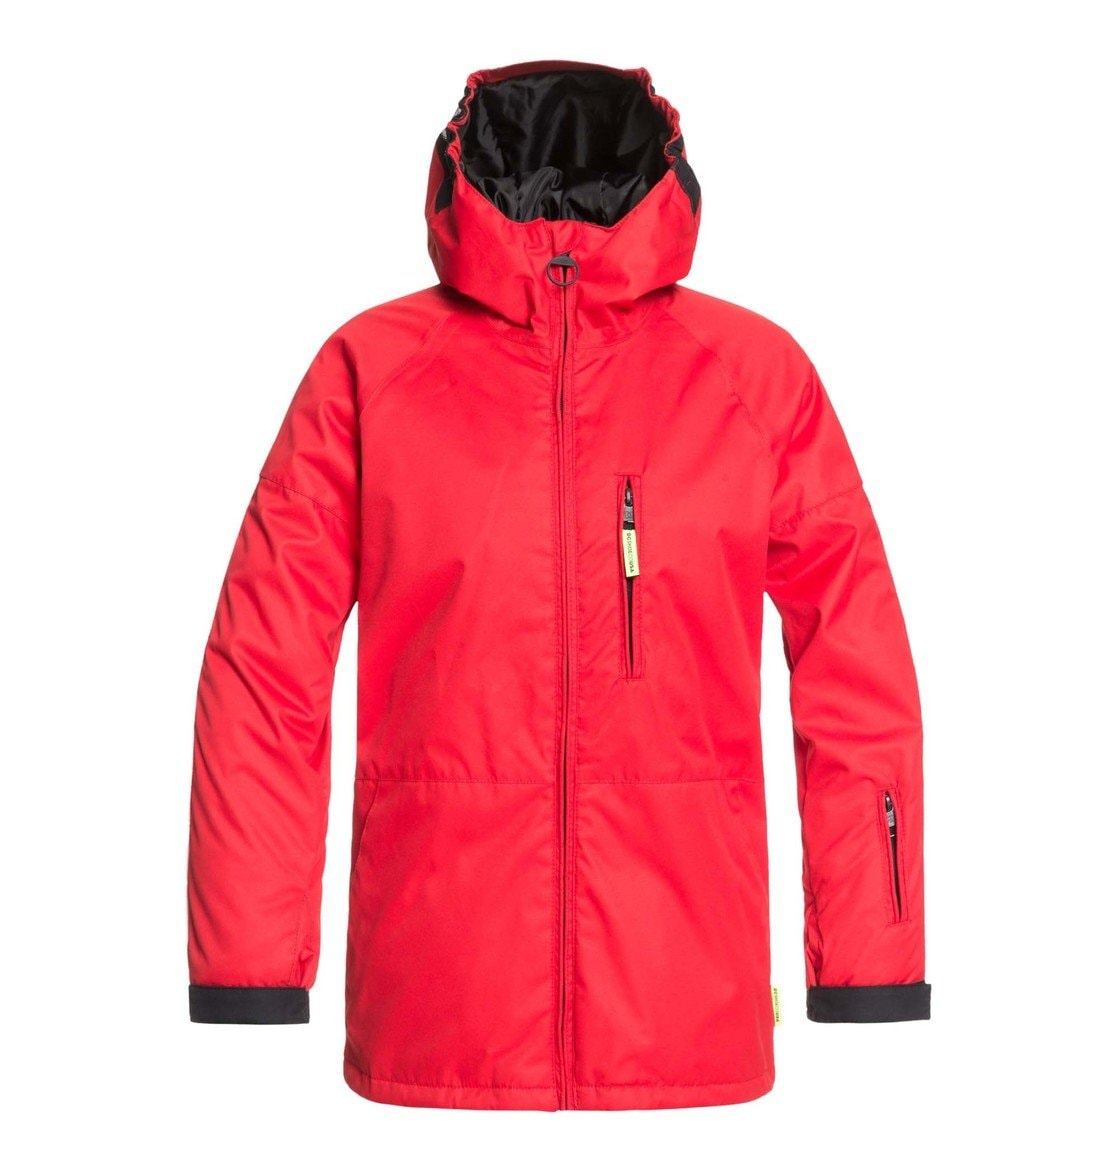 DC Shoes Snowboardjacke »Retrospect« von DC Shoes